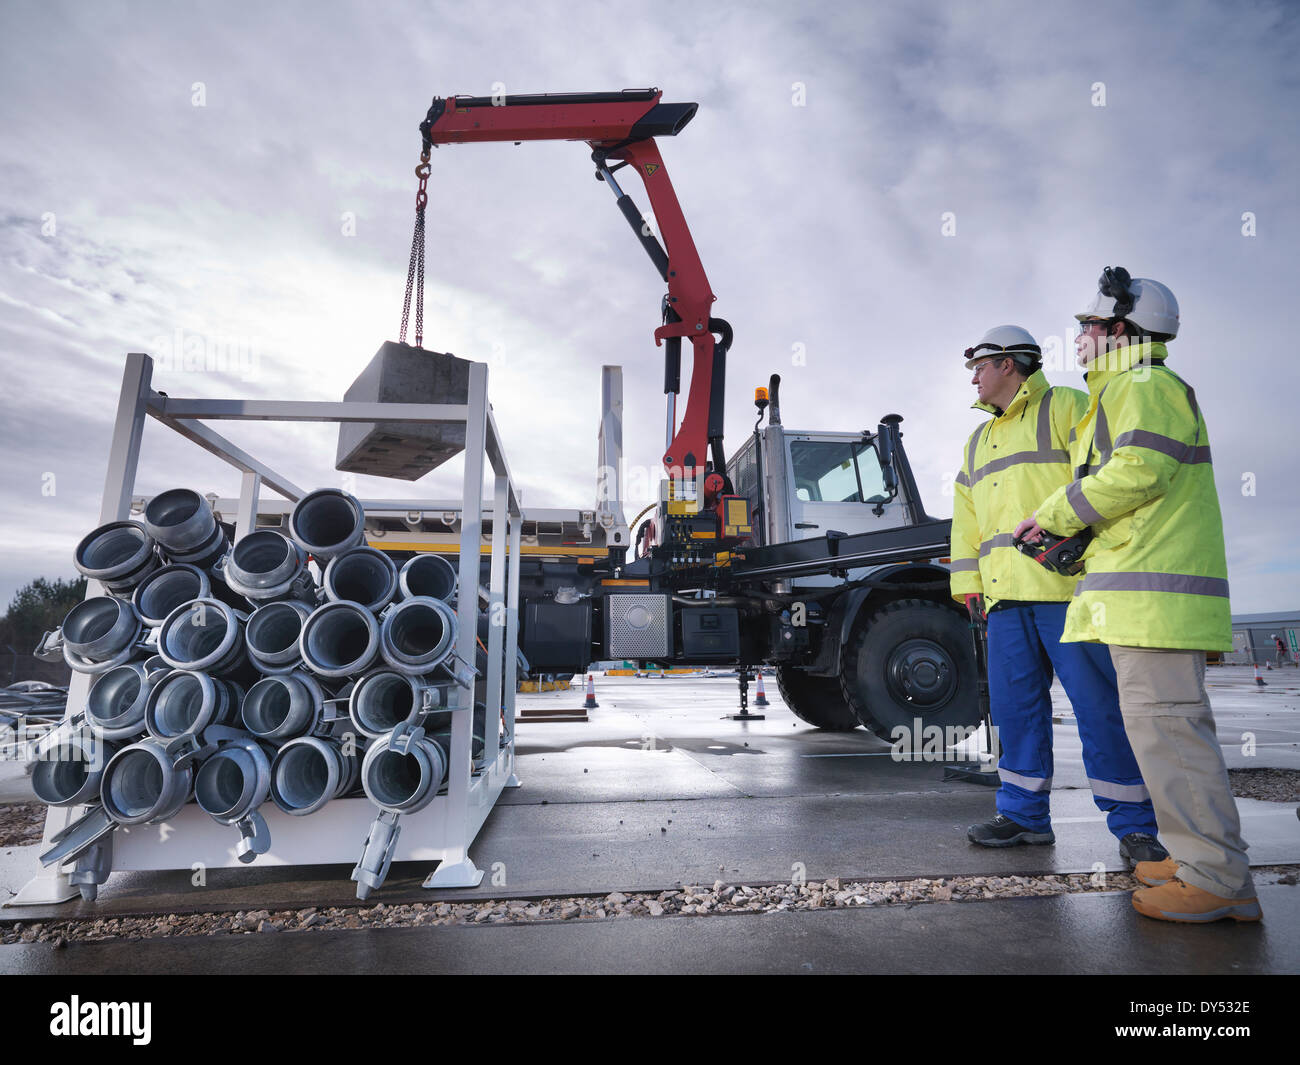 Emergency Response workers training with truck crane - Stock Image